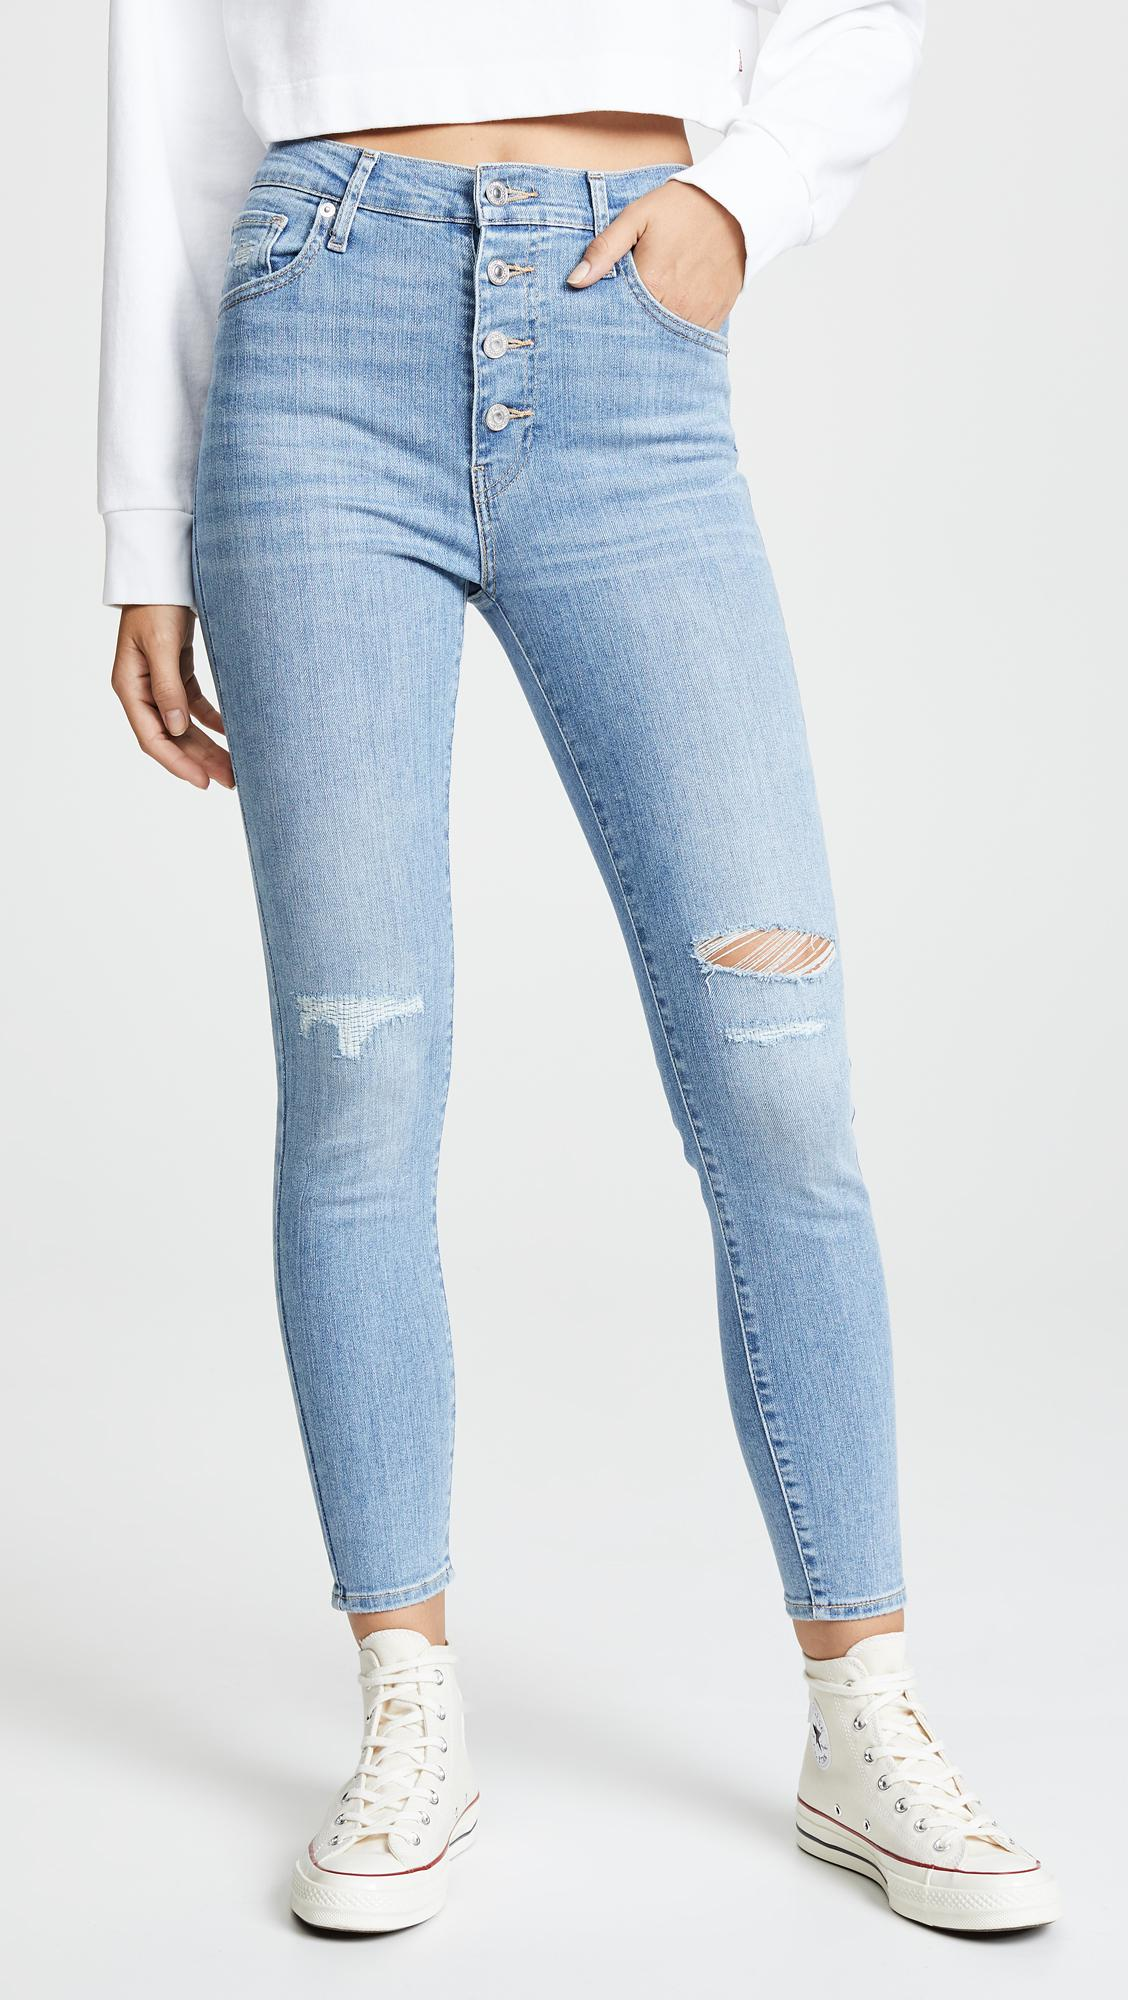 d36ae1f230e1de Levi's Mile High Super Skinny Ankle Jeans in Blue - Lyst